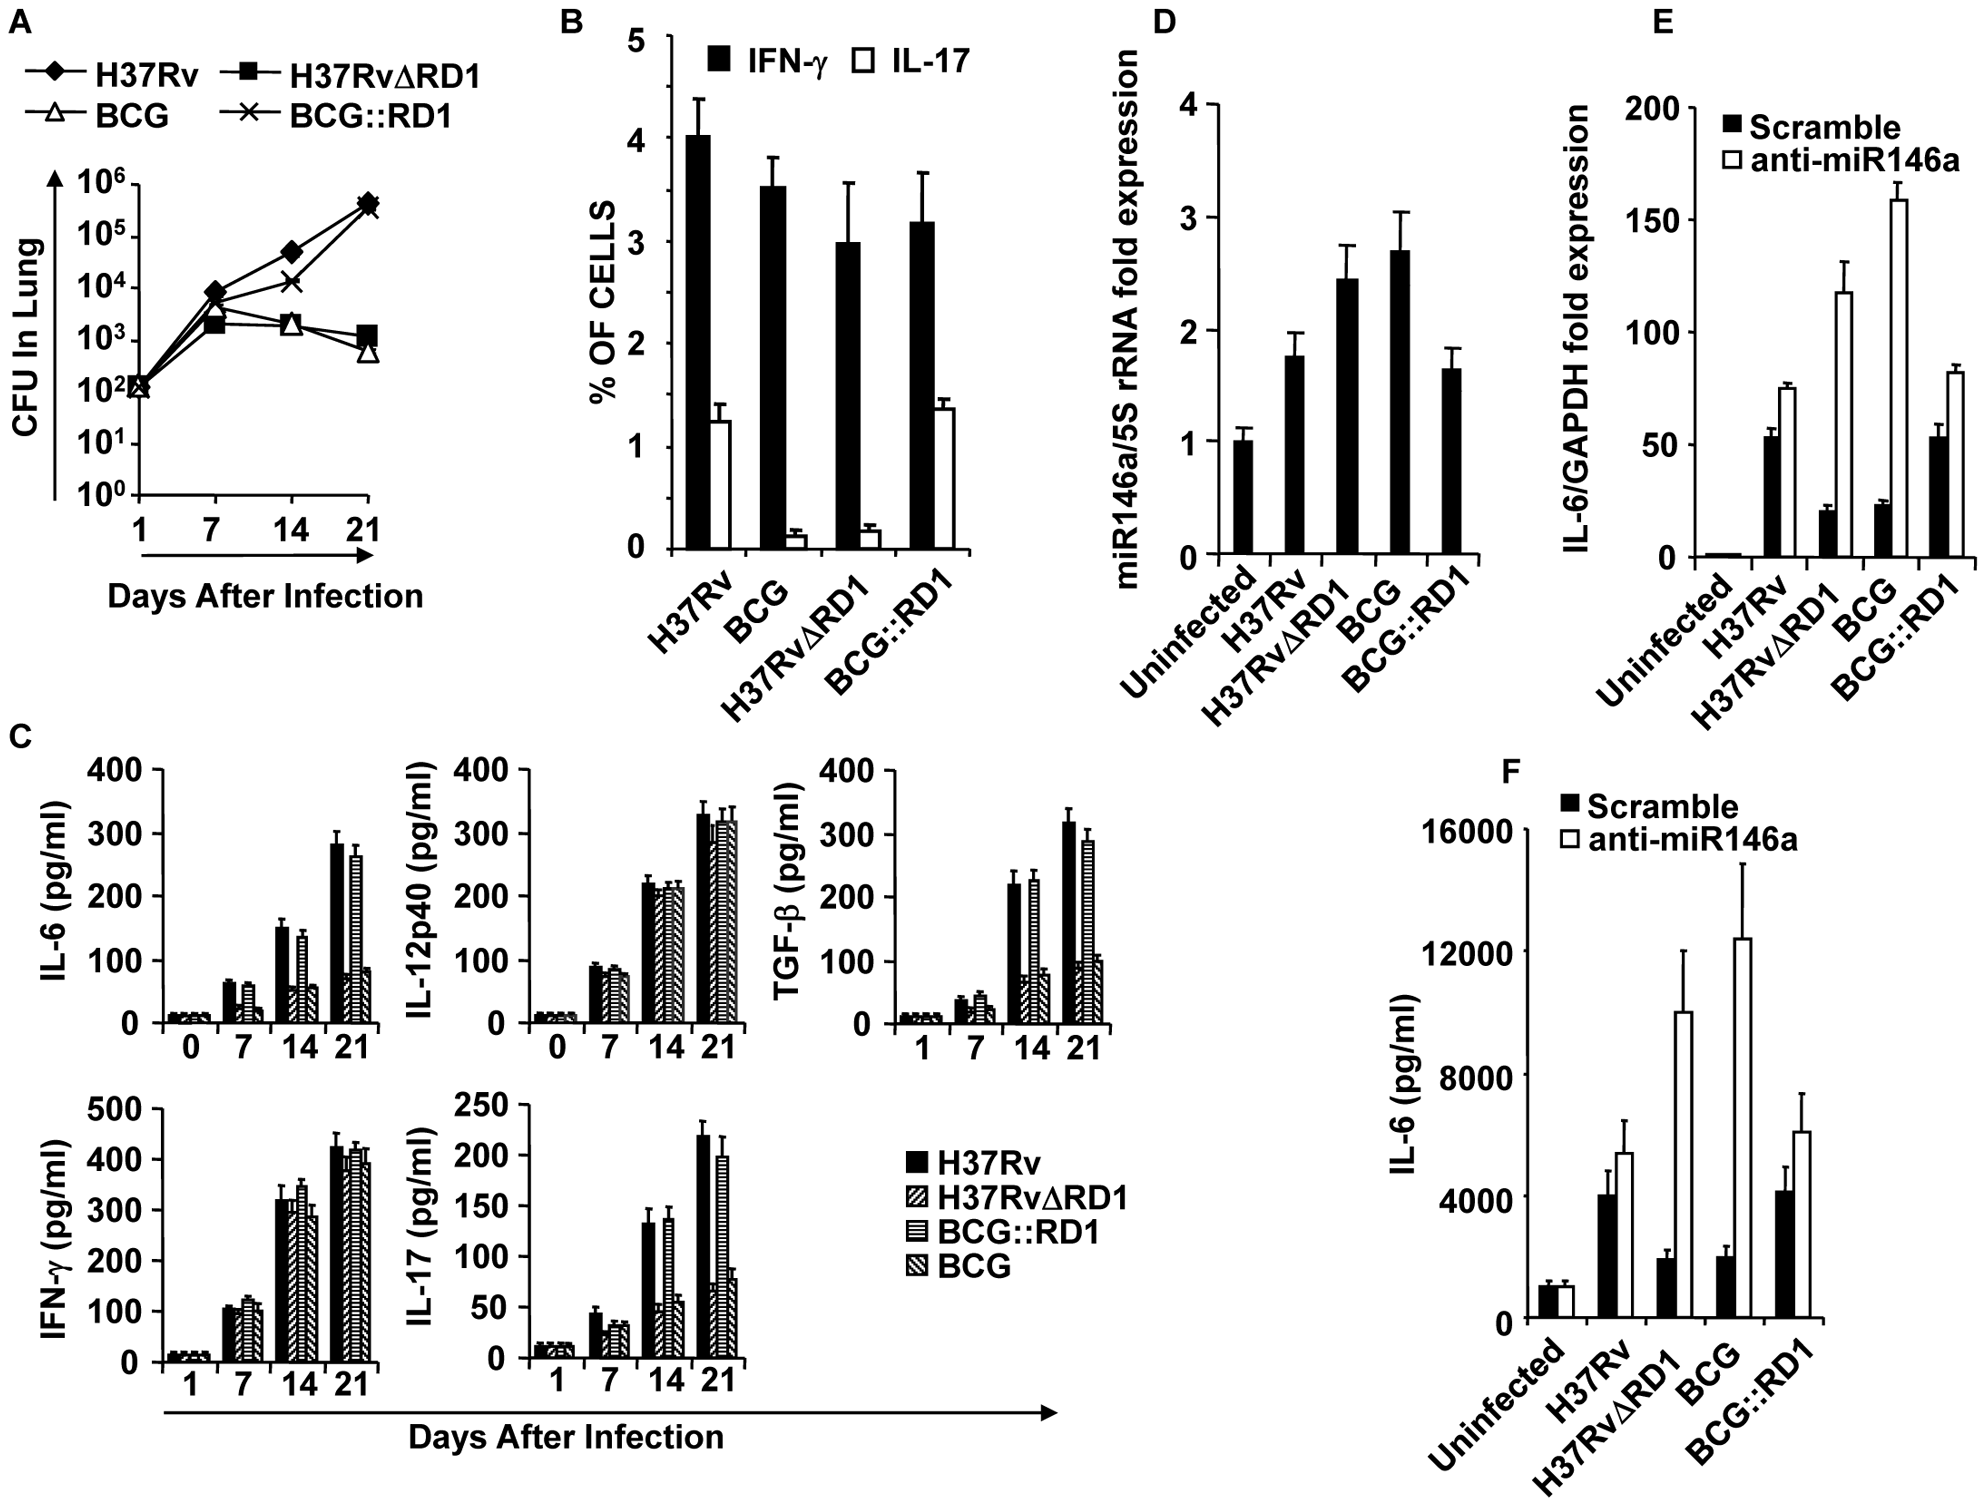 Infection with H37Rv or BCG::RD1 induces both Th1 and Th17 immunity, whereas BCG and H37RvΔRD1 selectively induce Th1 cell responses in the lung.